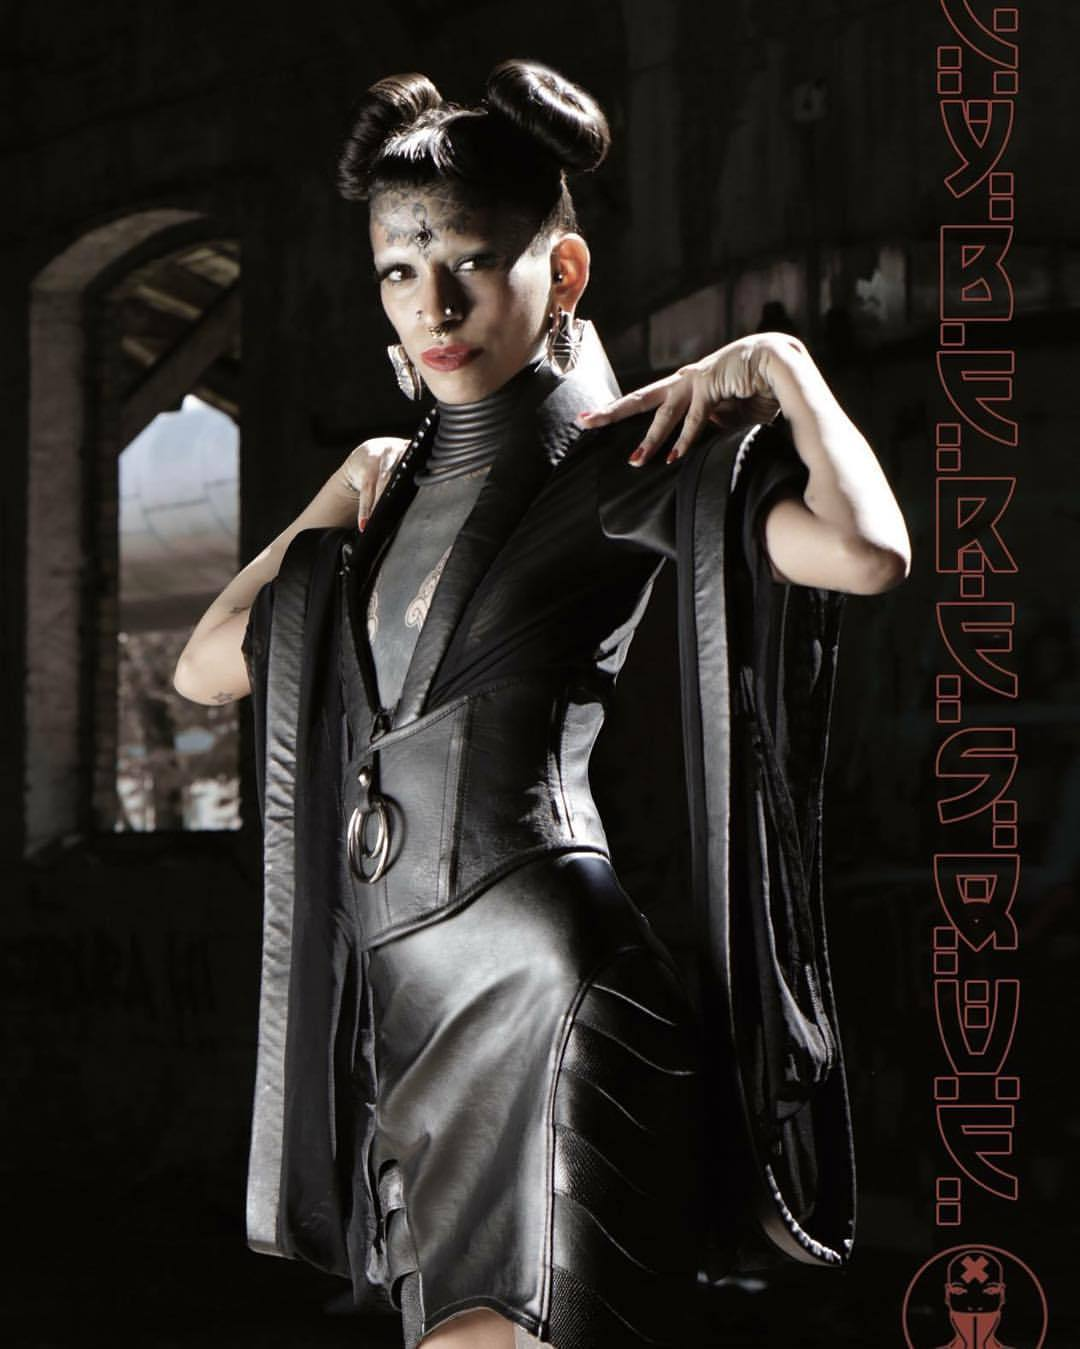 Berlin Gothic Cyberesque Ravishing Fashion From Berlin This Woman